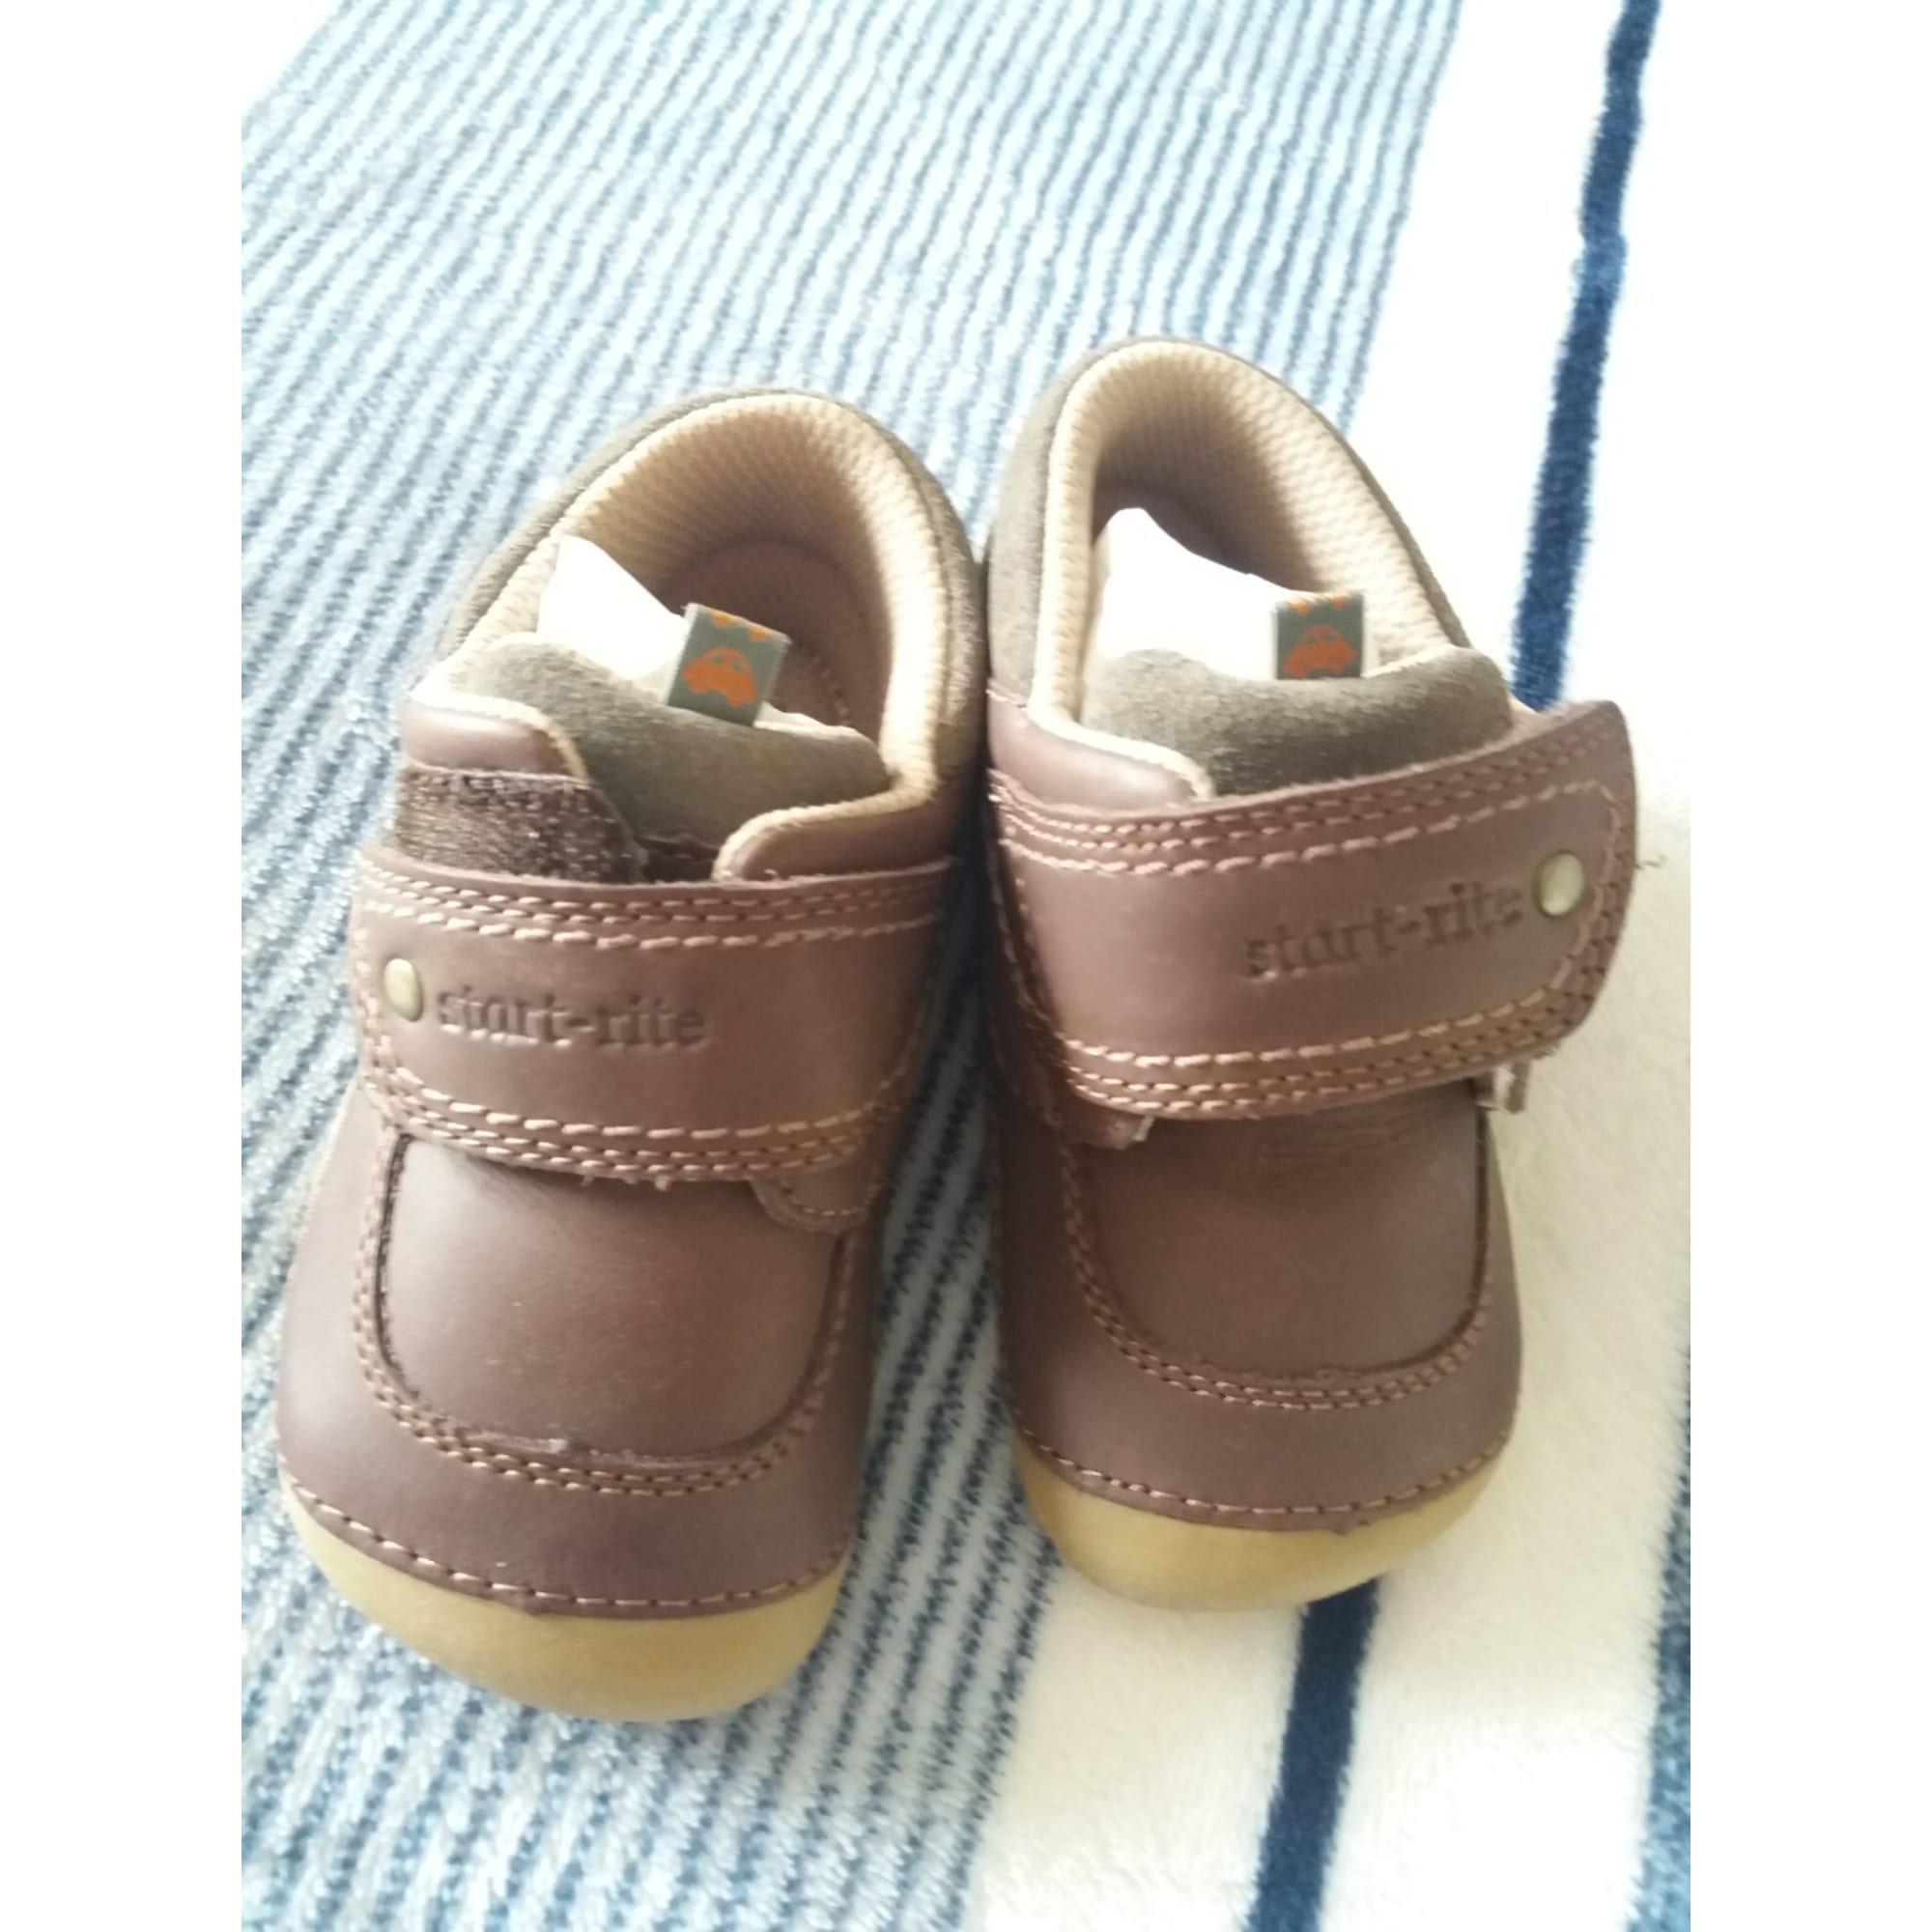 Velcro Shoes START RITE Brown